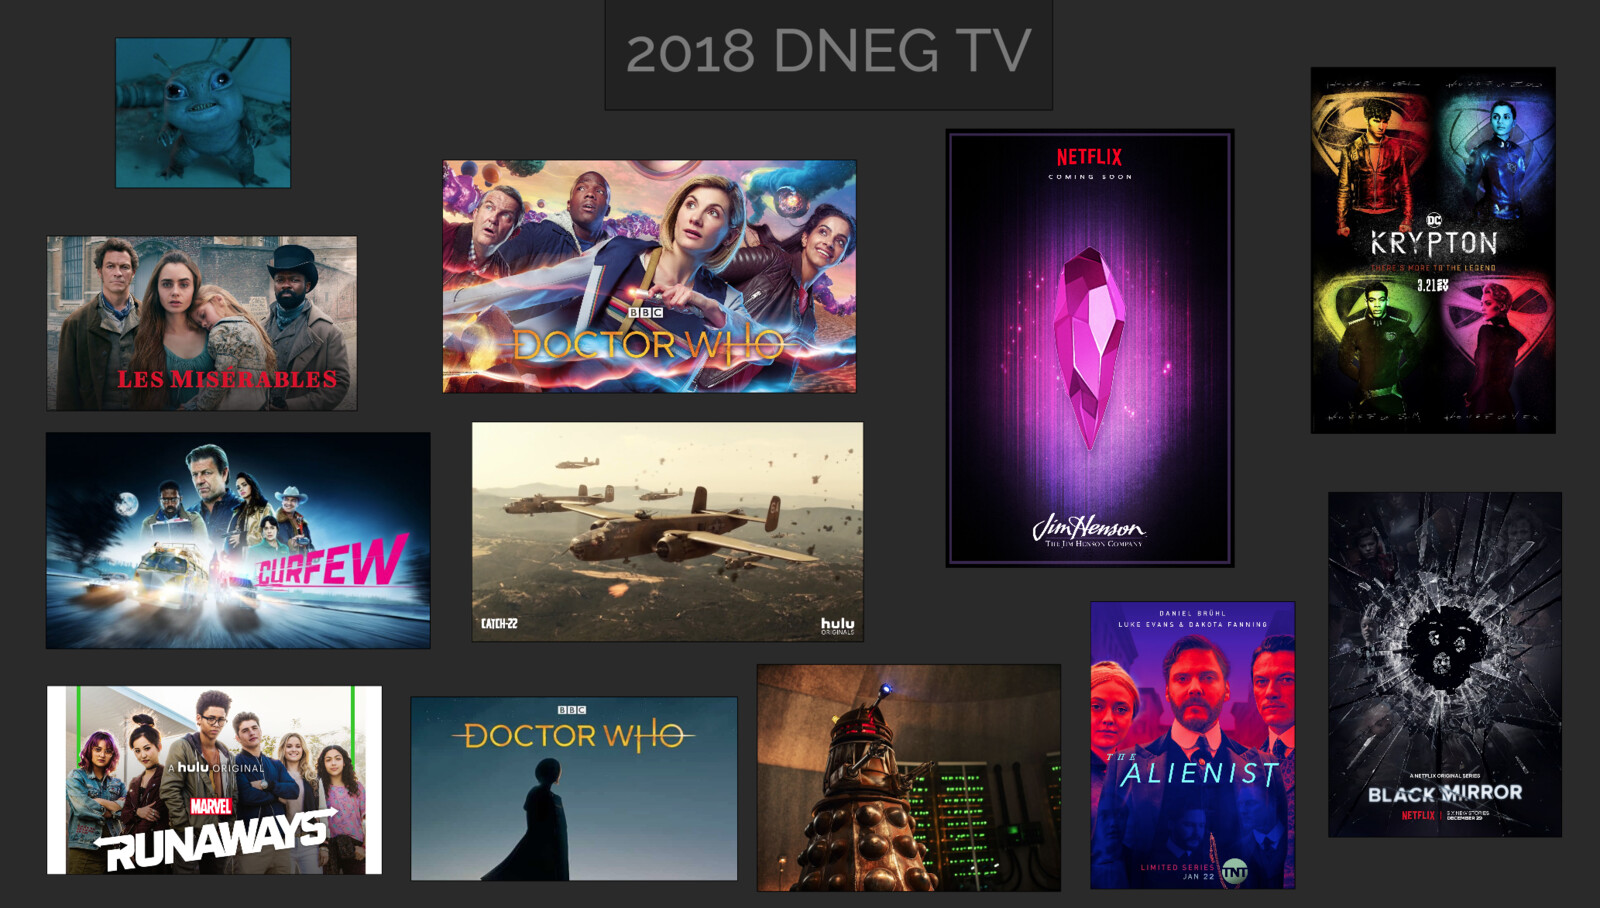 2018 At DNEG TV